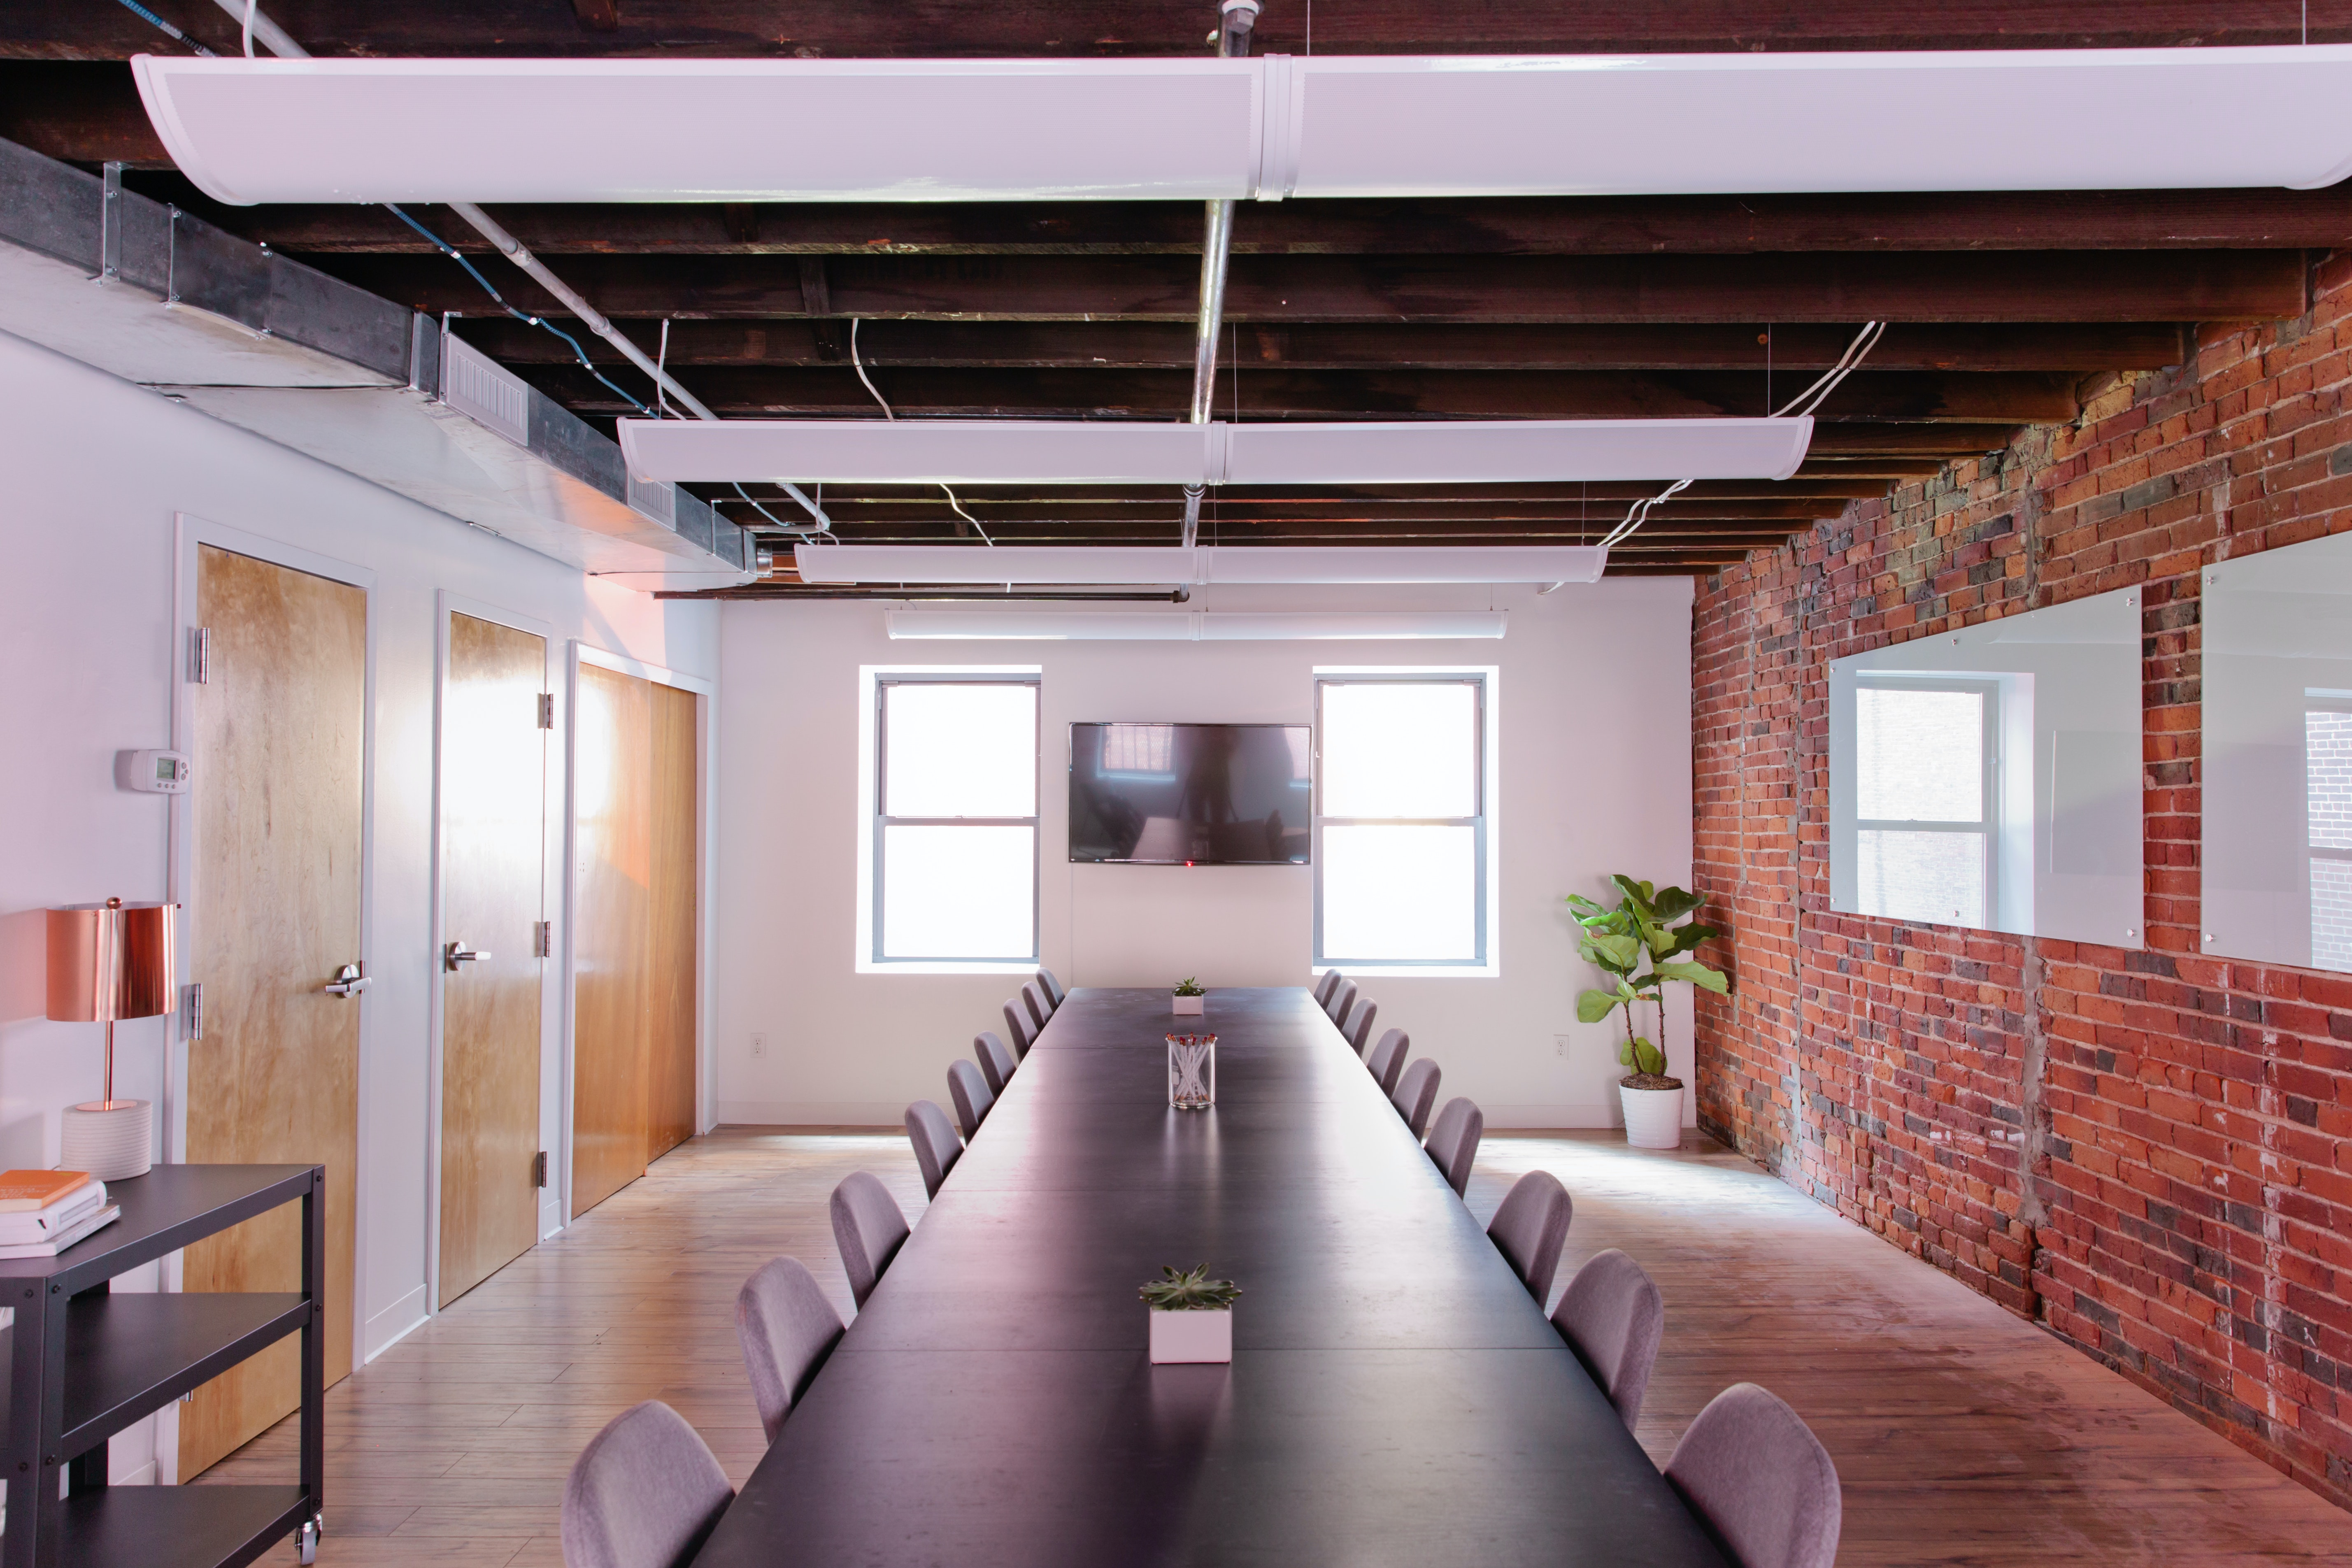 collaboration space at 87 Wendell Street ,Boston